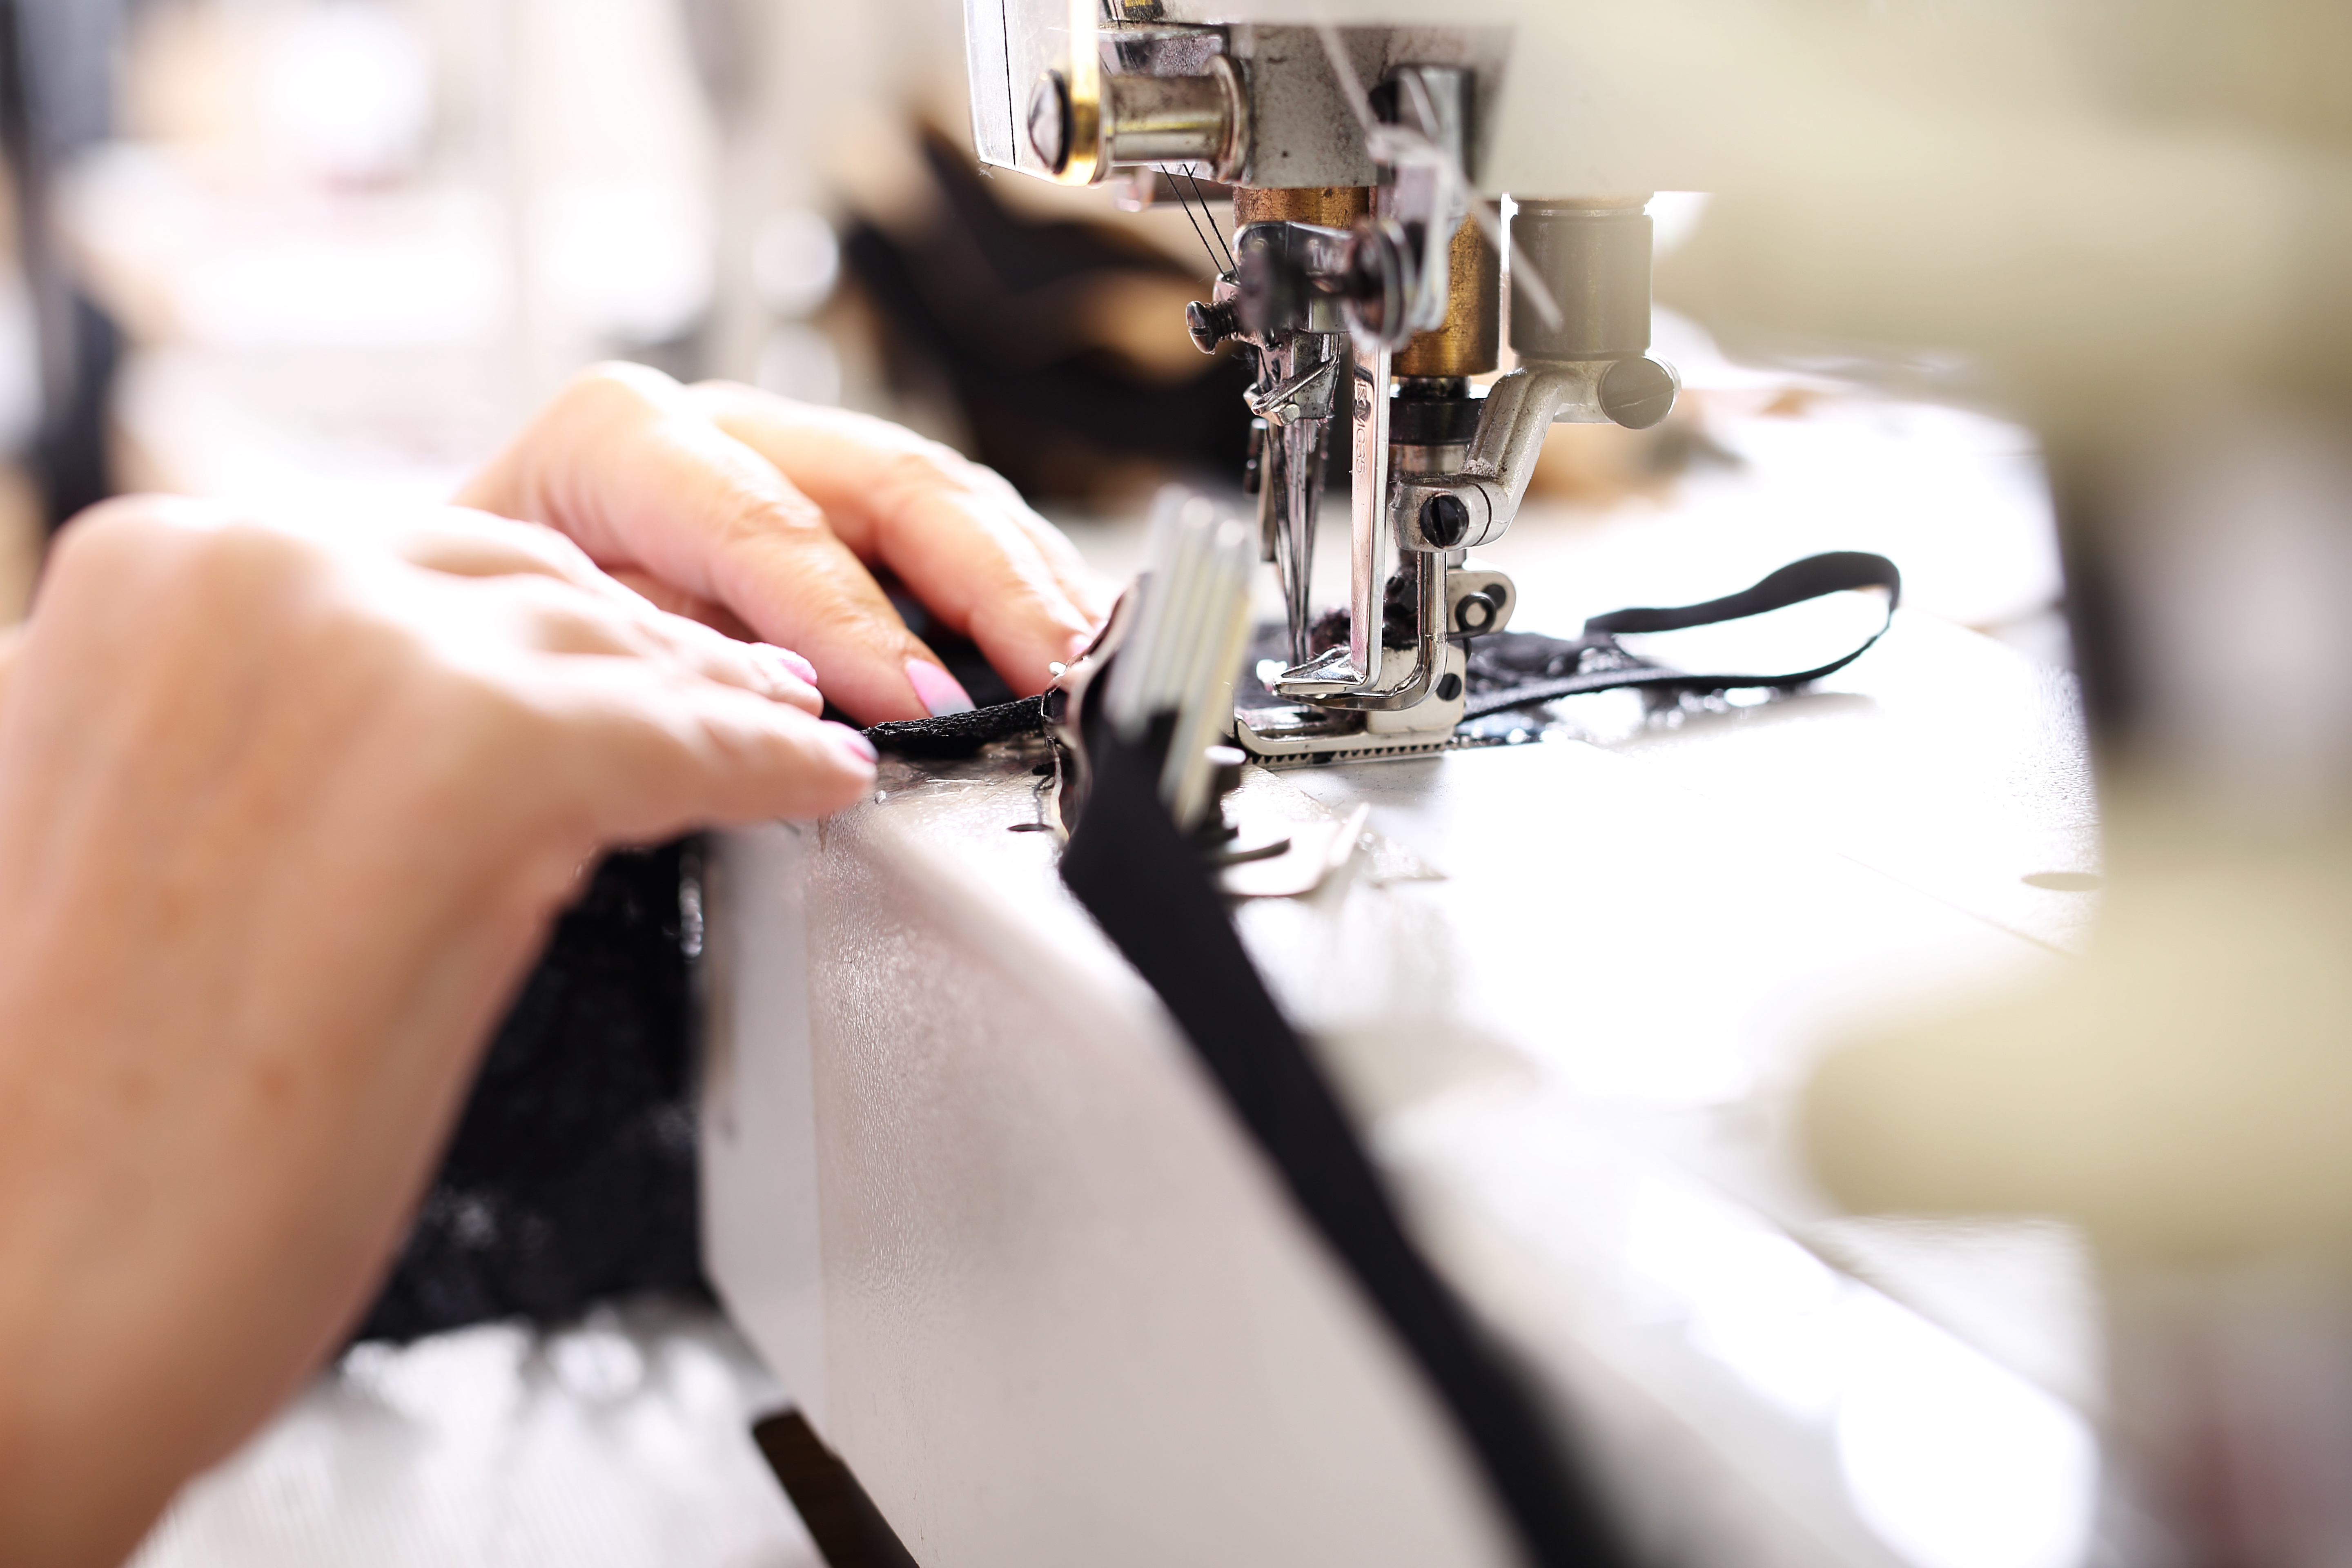 Development of a Cost-Effective Robotic Sewing System